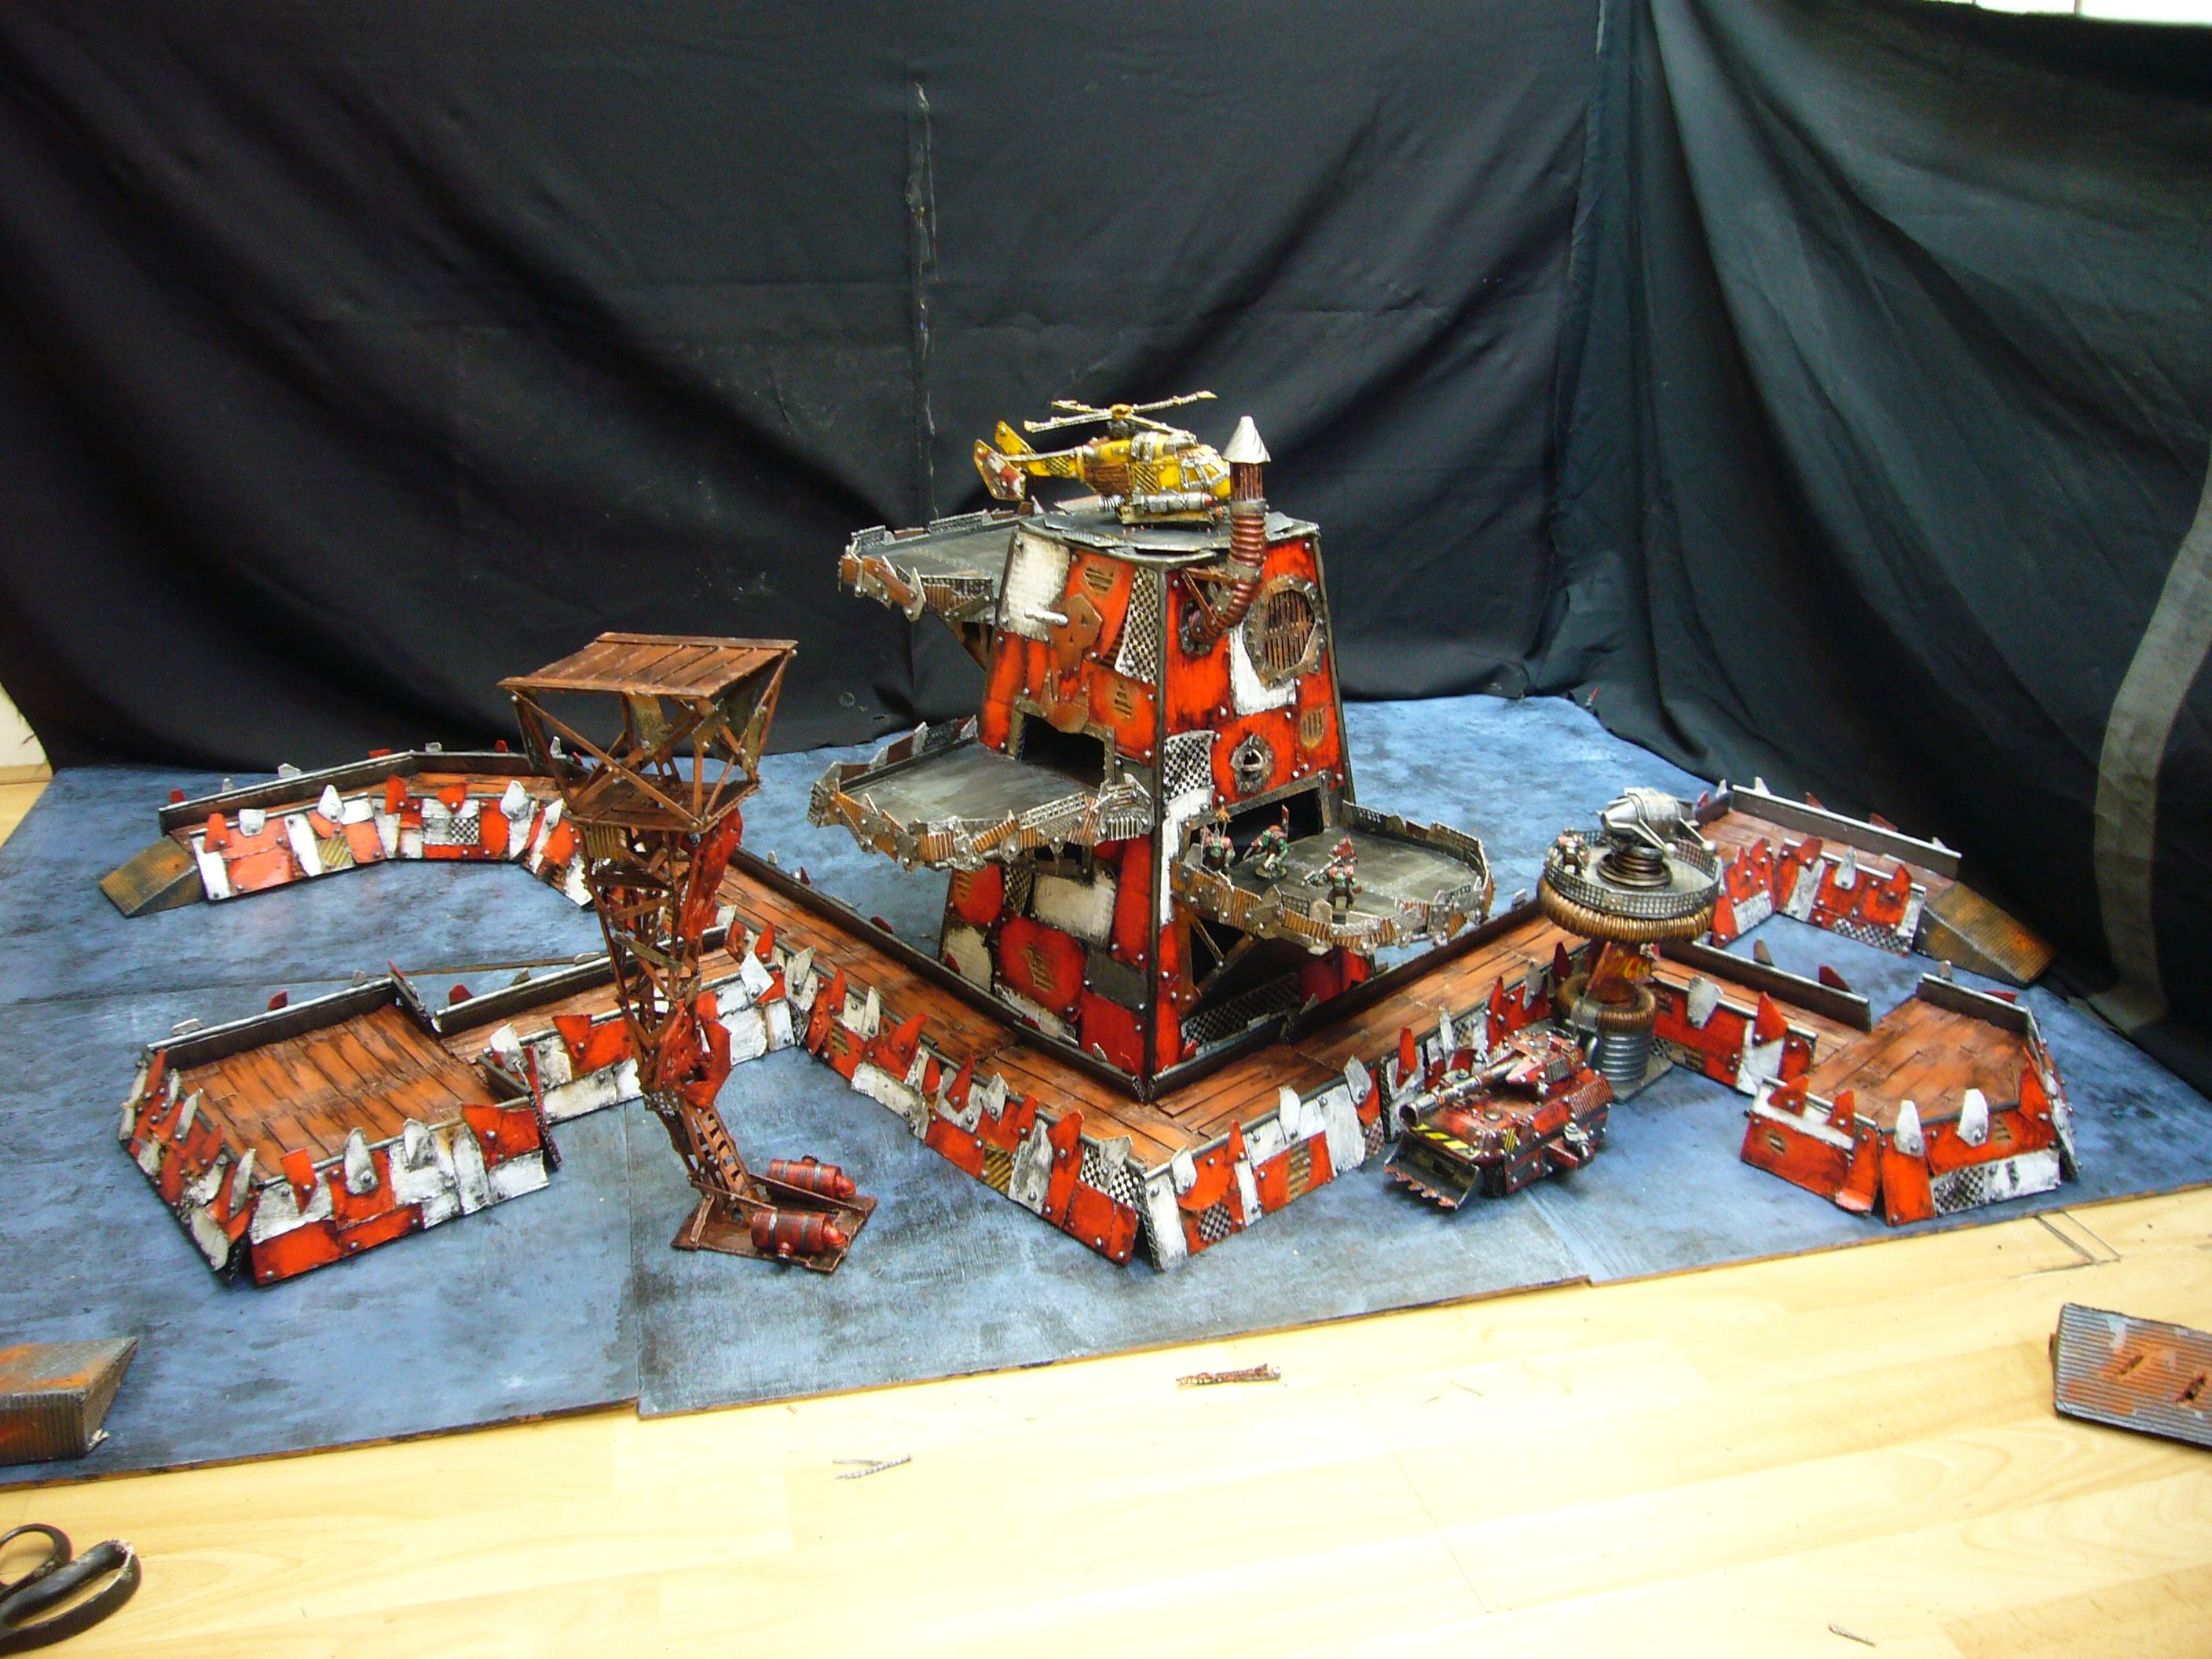 Helecopter, Landing Pad, Orks, Orky, Terrain, Trench